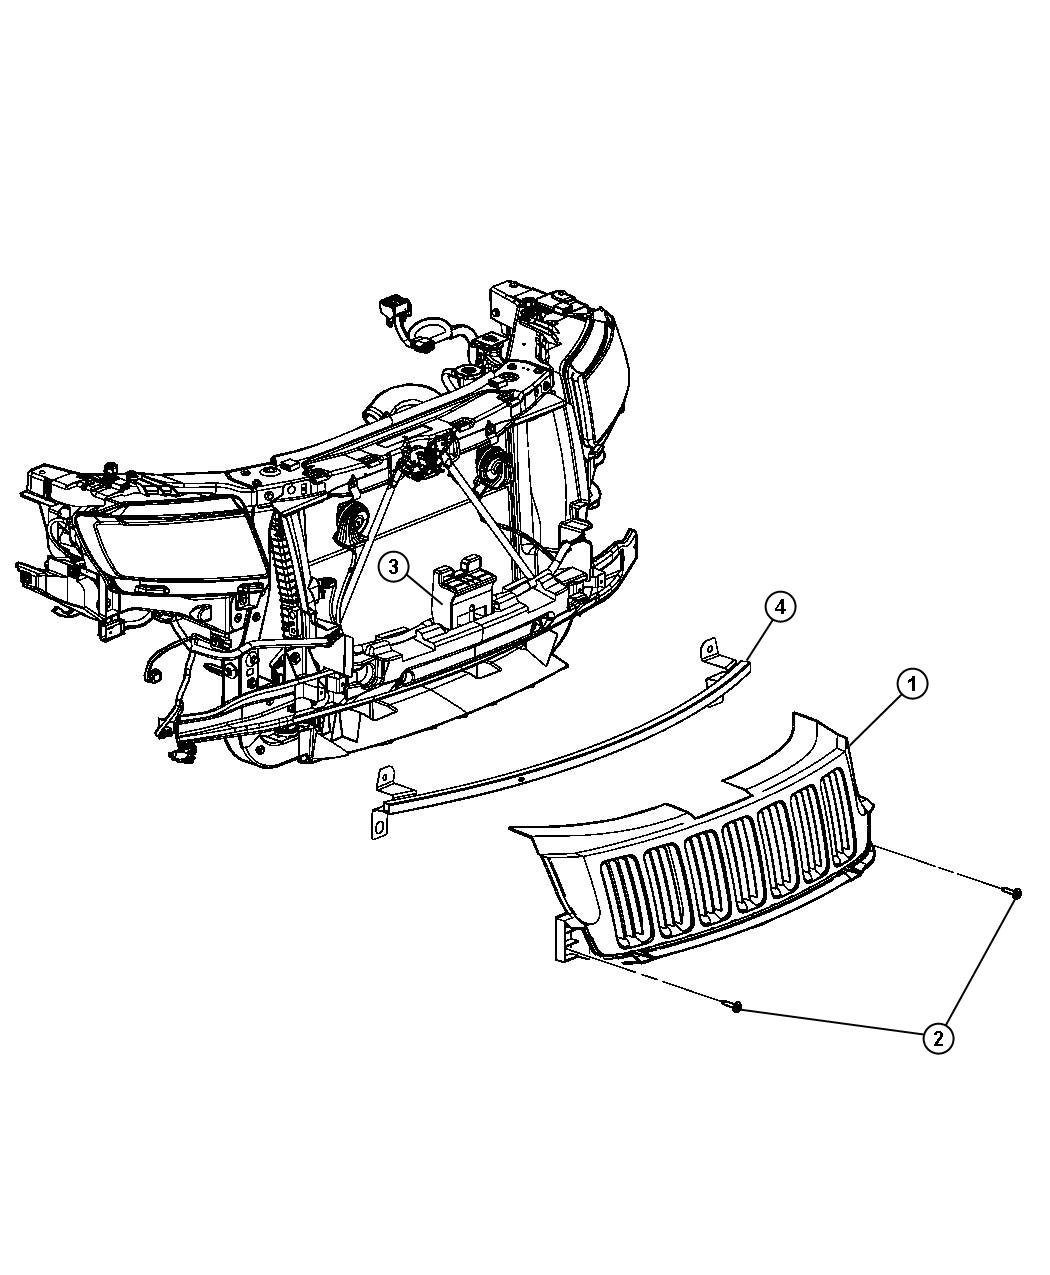 2013 Jeep Grand Cherokee Reinforcement. Grille. Ehw, exn